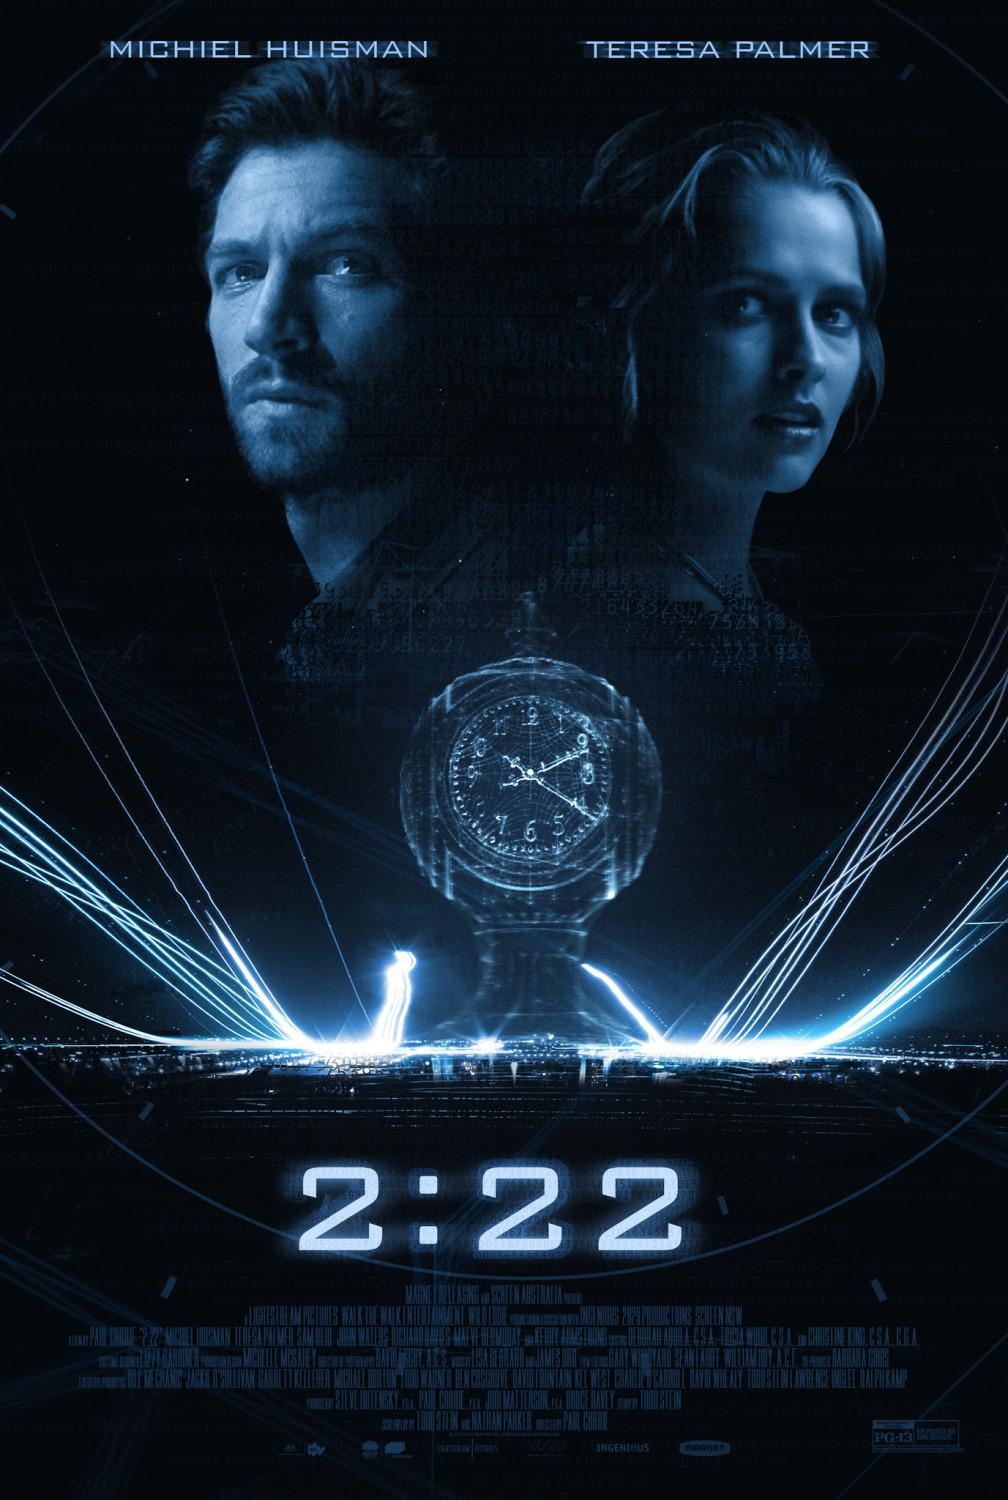 Film 2:22 - 222 two twentytwo - 2 22 - Due Ventidue - time - destiny - poster  - Michiel Huisman -  Teresa Palmer